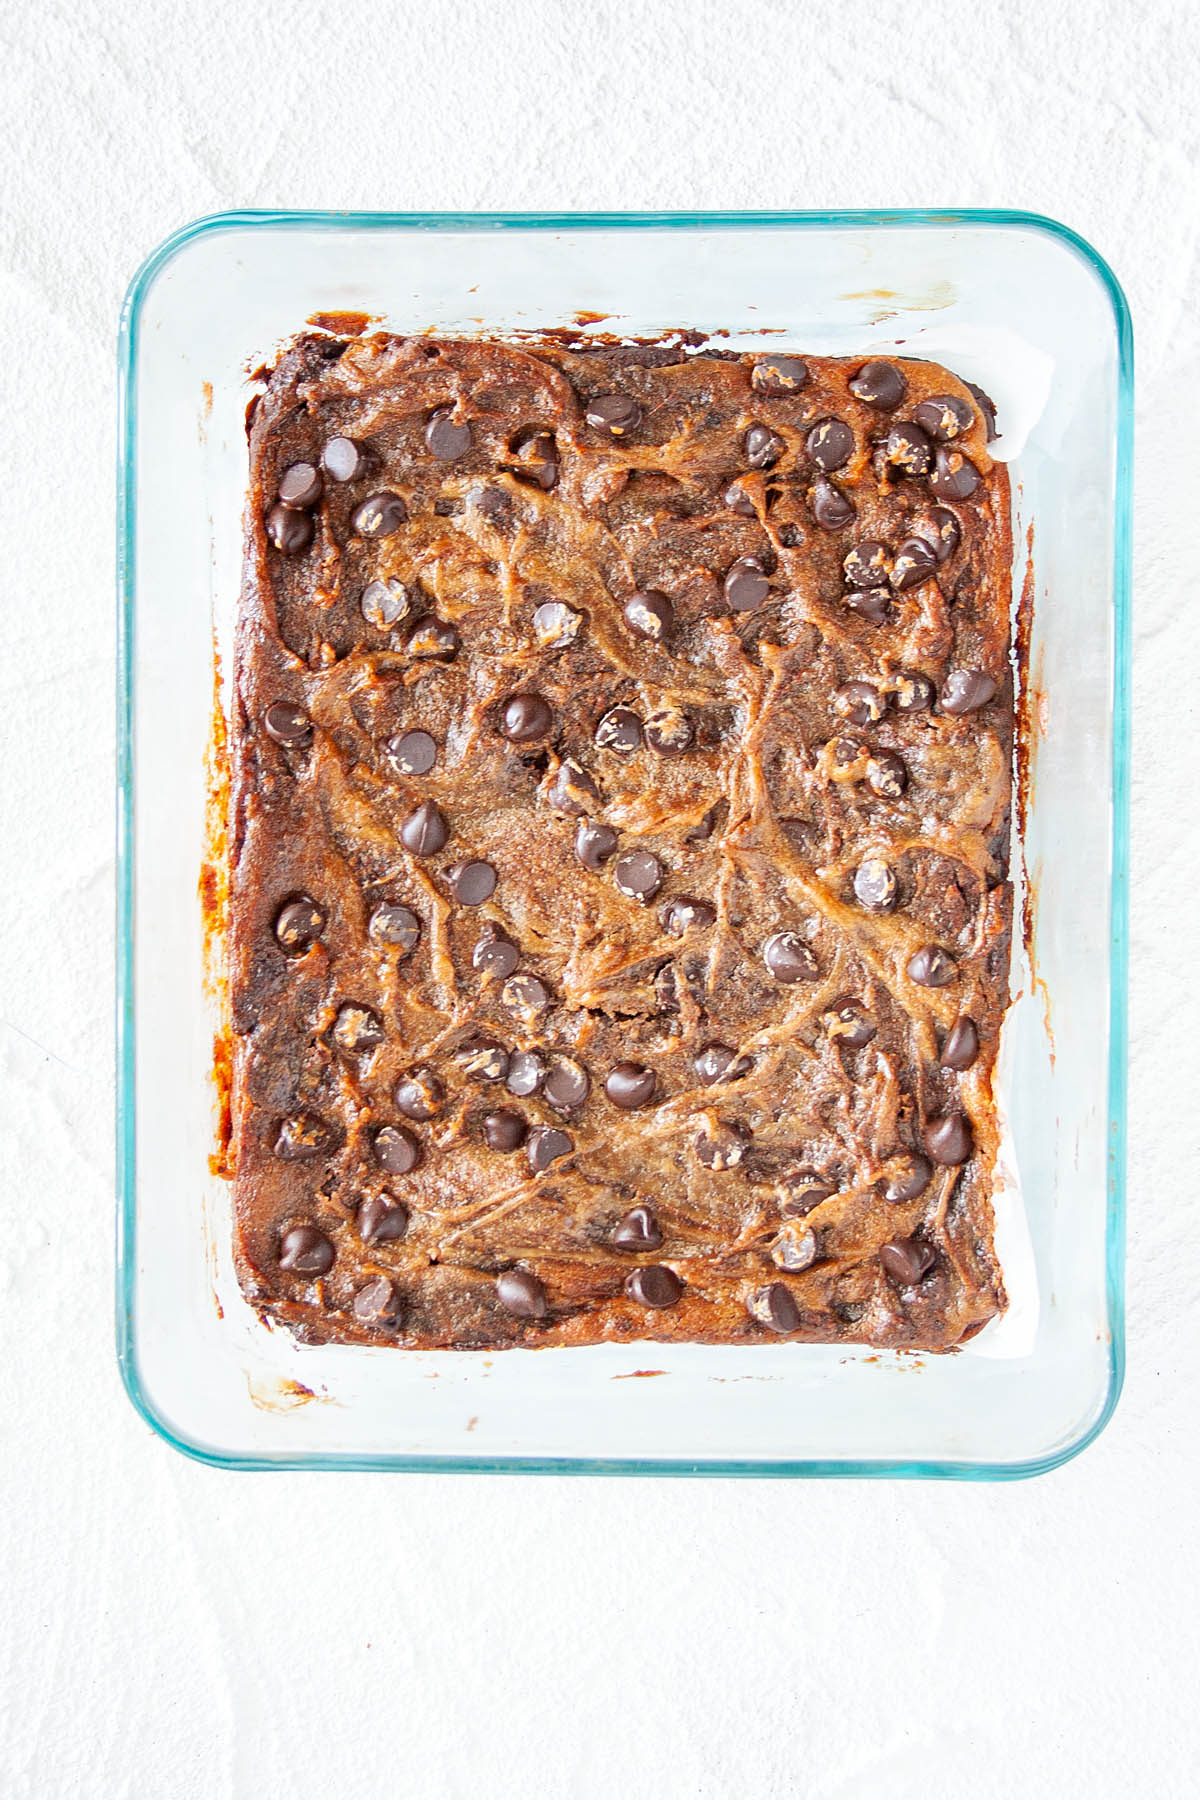 Vegan Peanut Butter Swirl Brownies in a baking dish bird's eye view.